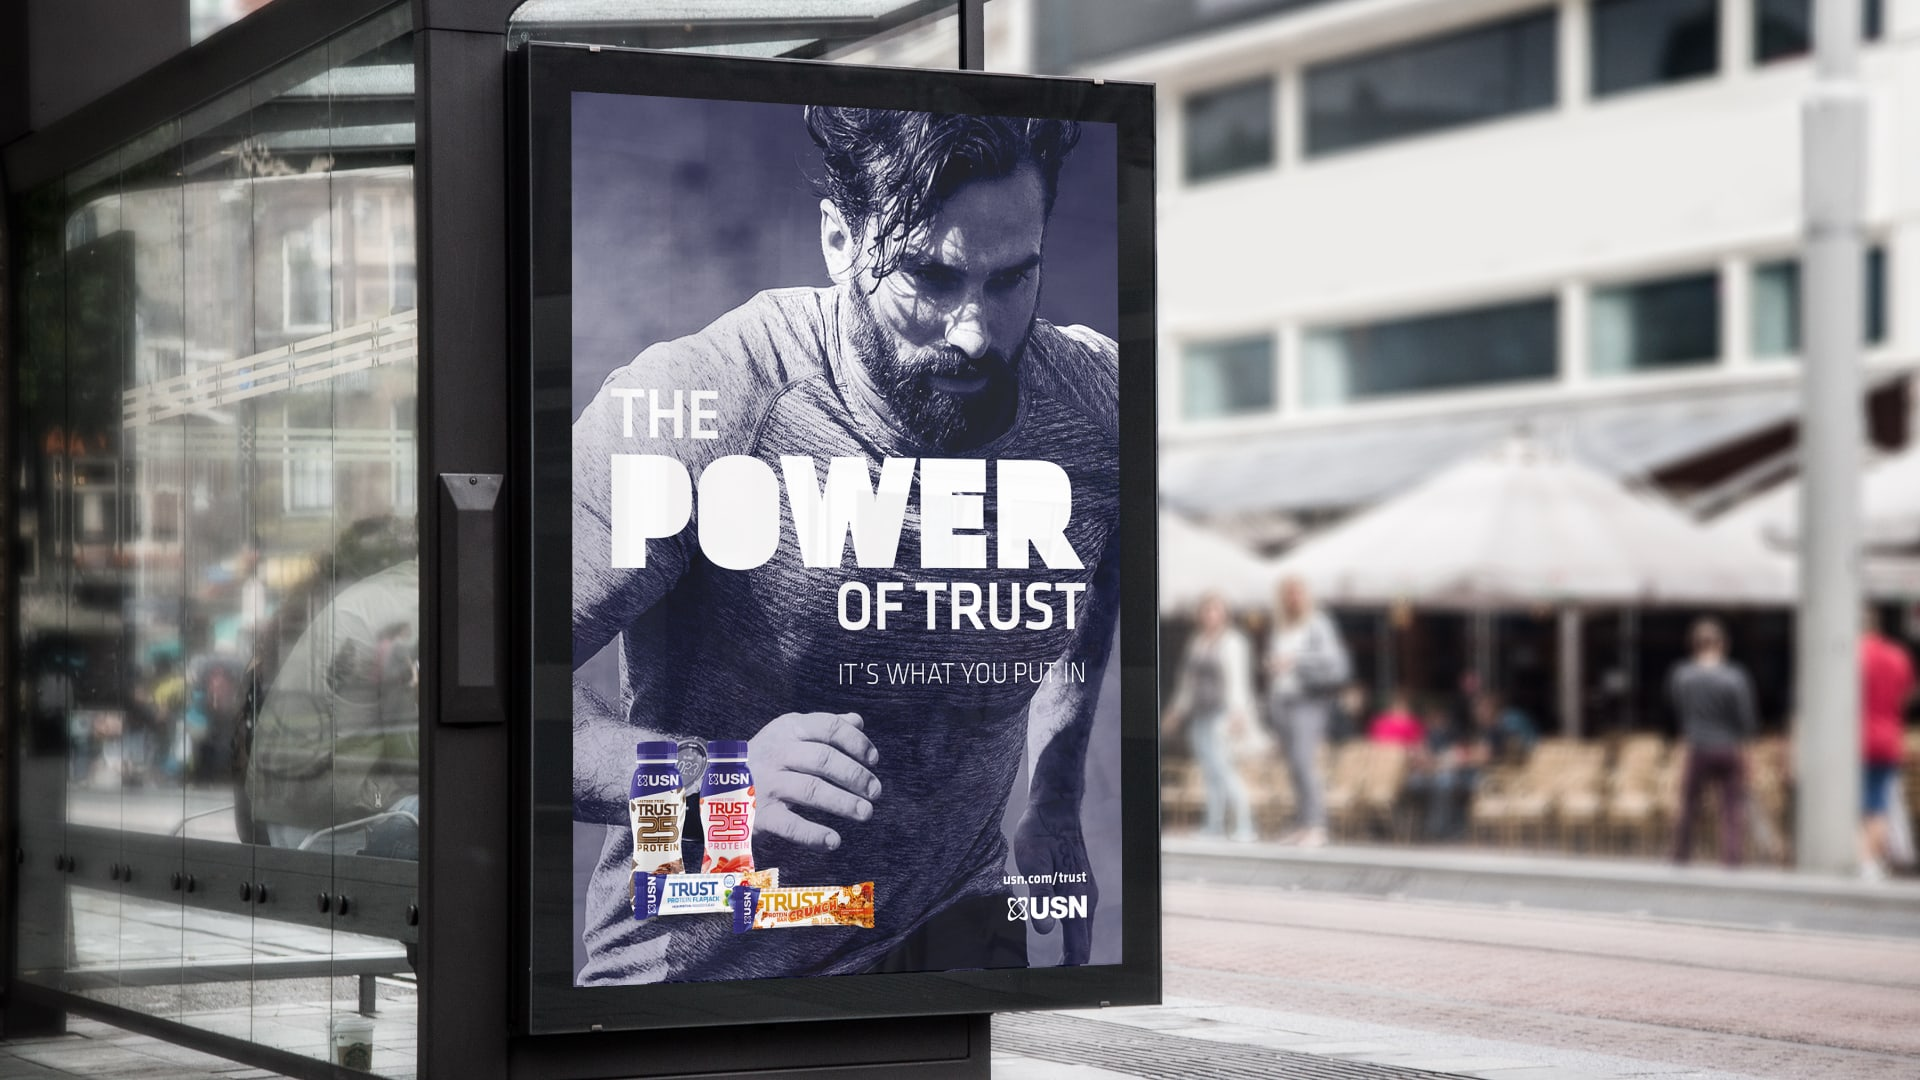 USN The Power of Trust 6 sheet advertising at a bus stop feature Ant Middleton